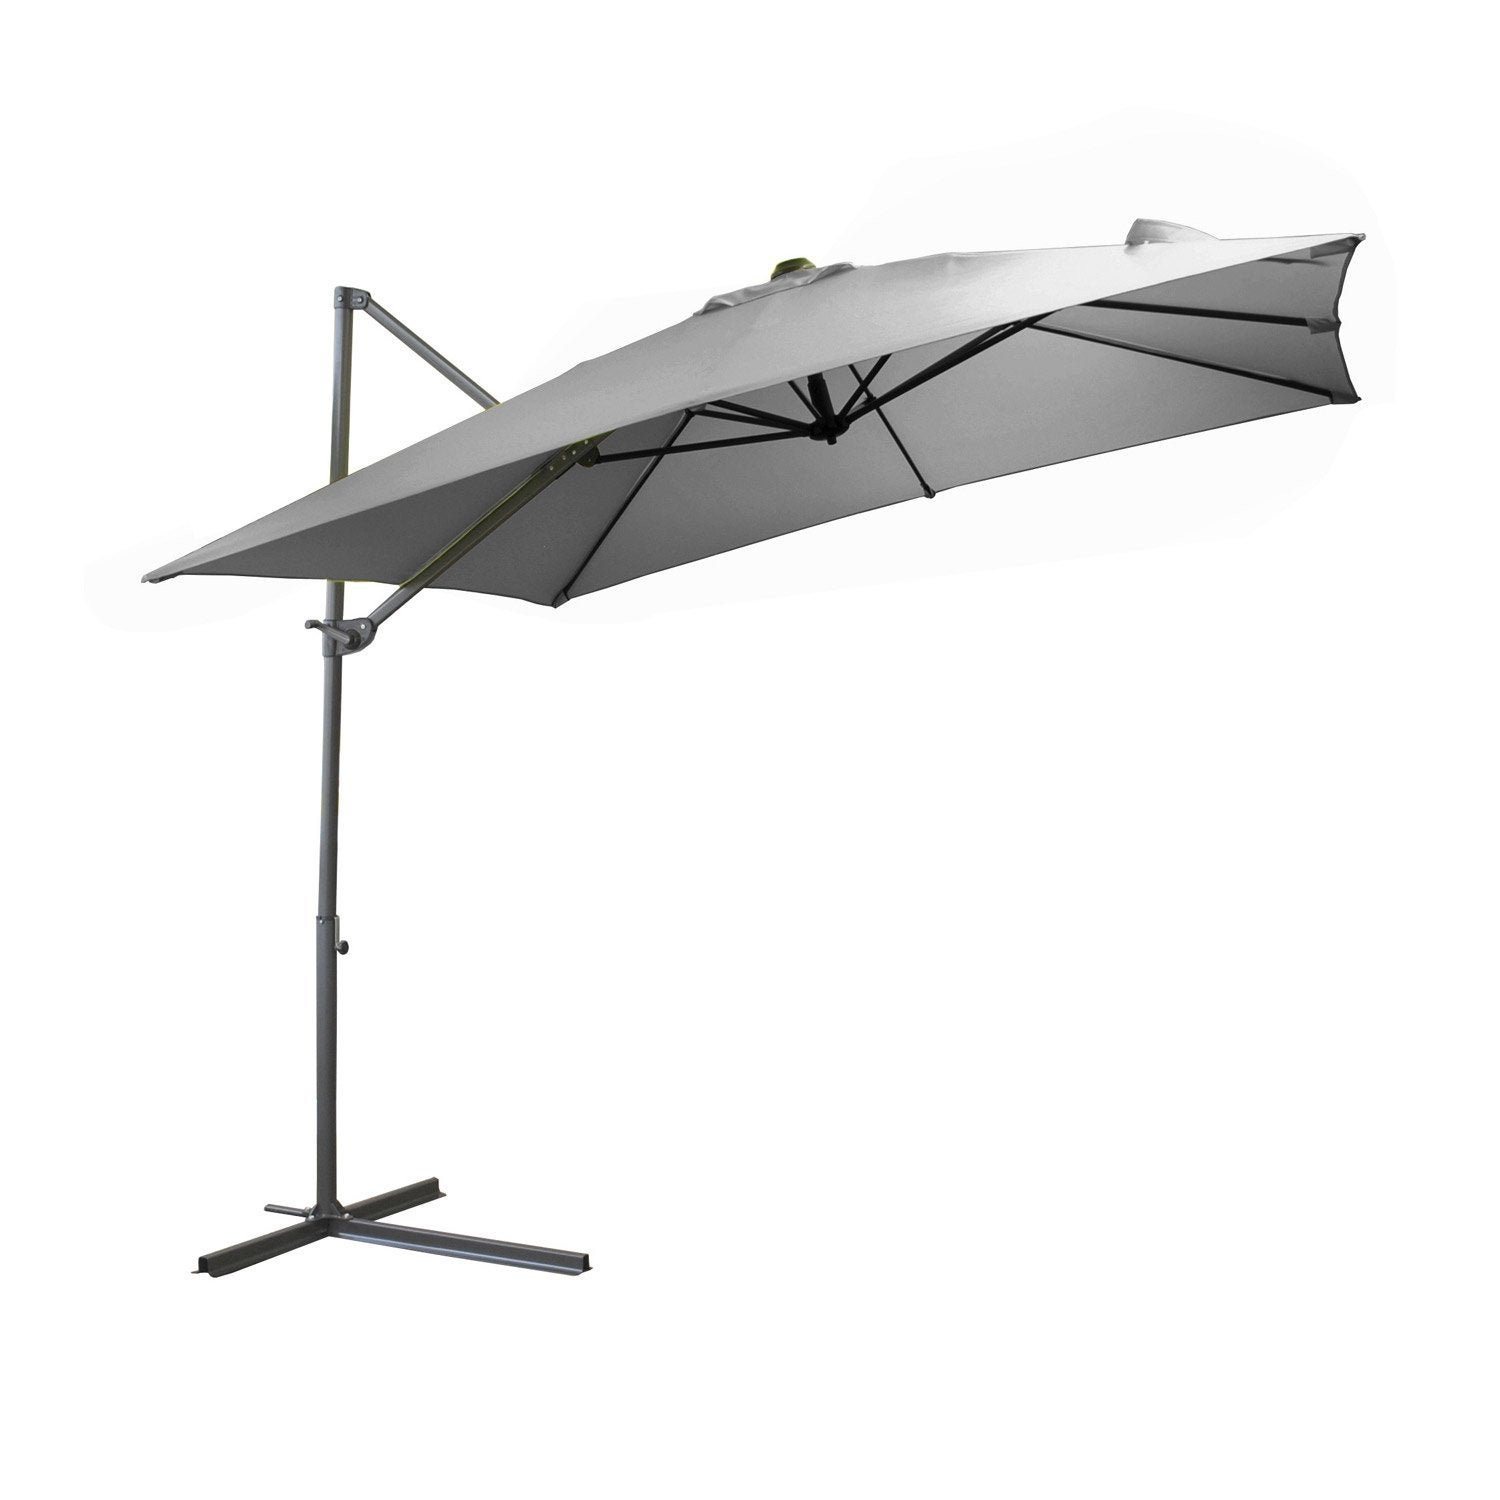 Dalle parasol leroy merlin gallery of parasol basic lift - Parasol rectangulaire inclinable castorama ...